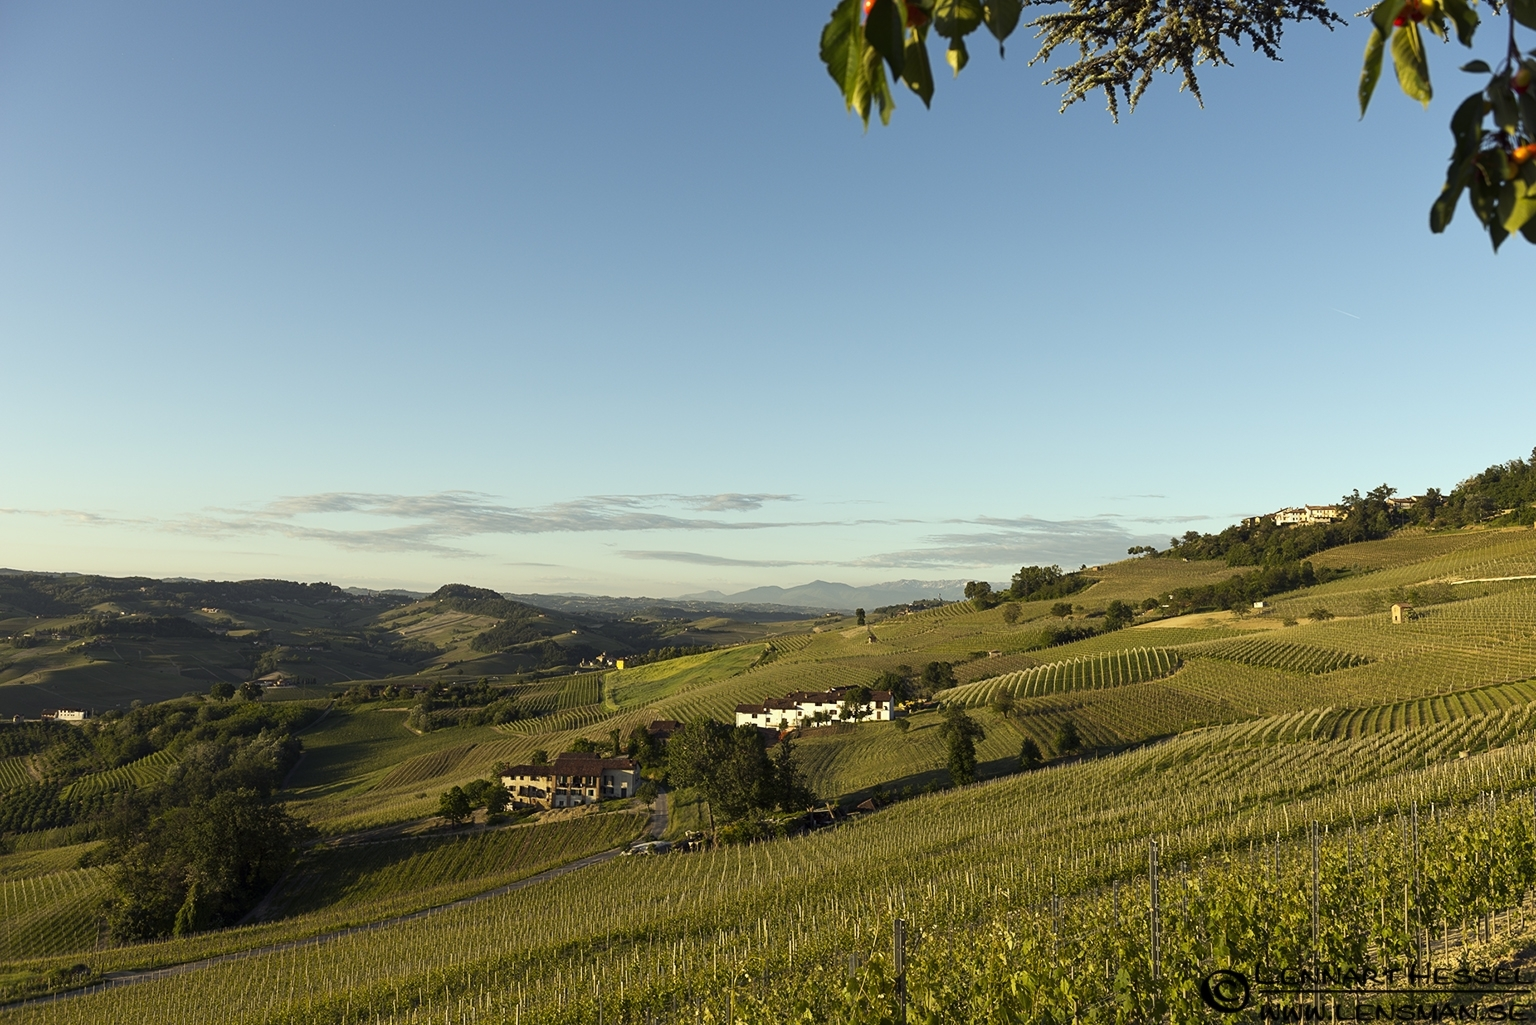 Clear morning in Piedmont, Italy